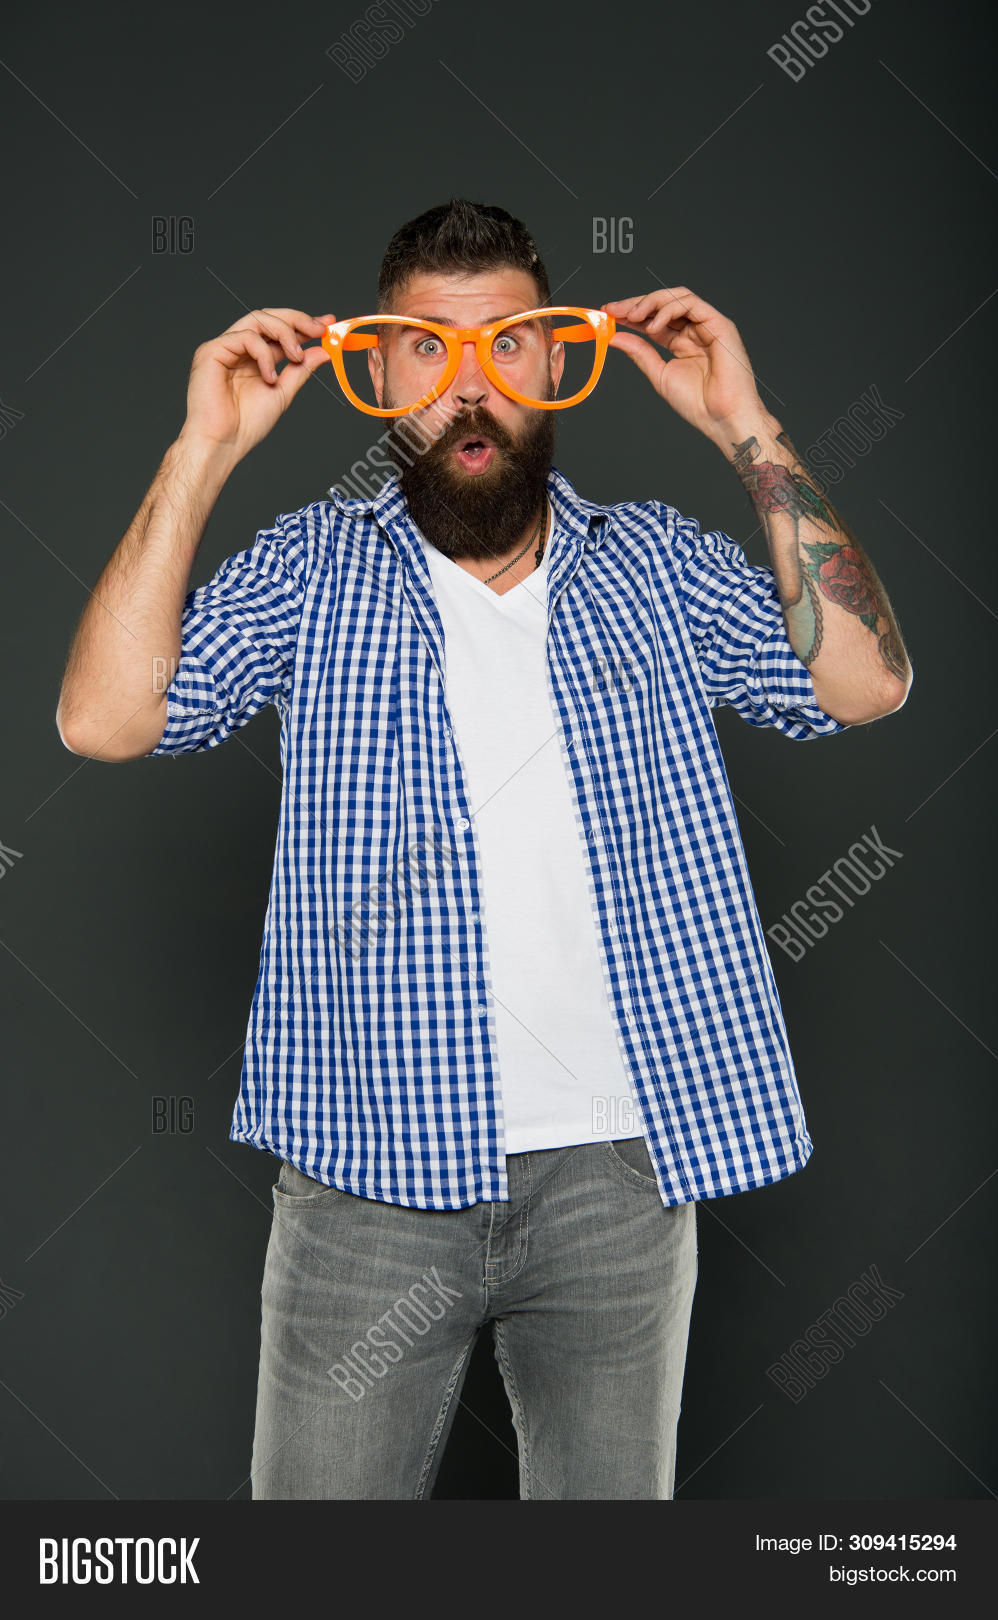 accessory,background,beard,bearded,brutal,casual,caucasian,celebrating,celebration,chic,crazy,emotions,eyes,fancy,fashion,fashionable,fun,funny,geek,geeky,glasses,grey,hair,hipster,holiday,insane,lifestyle,look,lunatic,mad,madman,man,mood,moustache,mustache,nerd,nerdy,party,partying,style,stylish,surprise,surprised,trend,trendy,unshaven